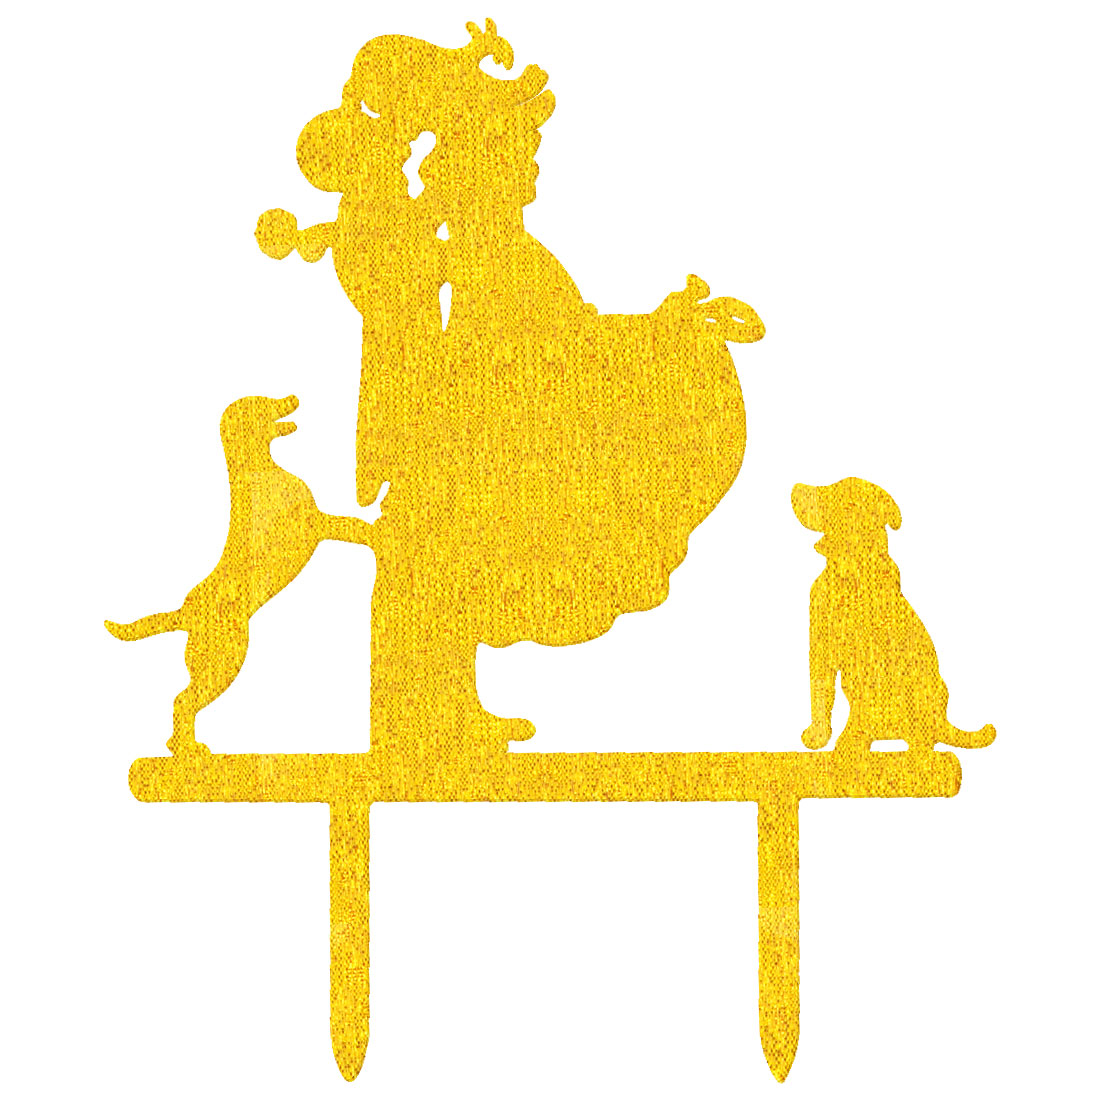 Gift Acrylic Couple Dog Silhouette DIY Wedding Decoration Cake Topper Gold Tone